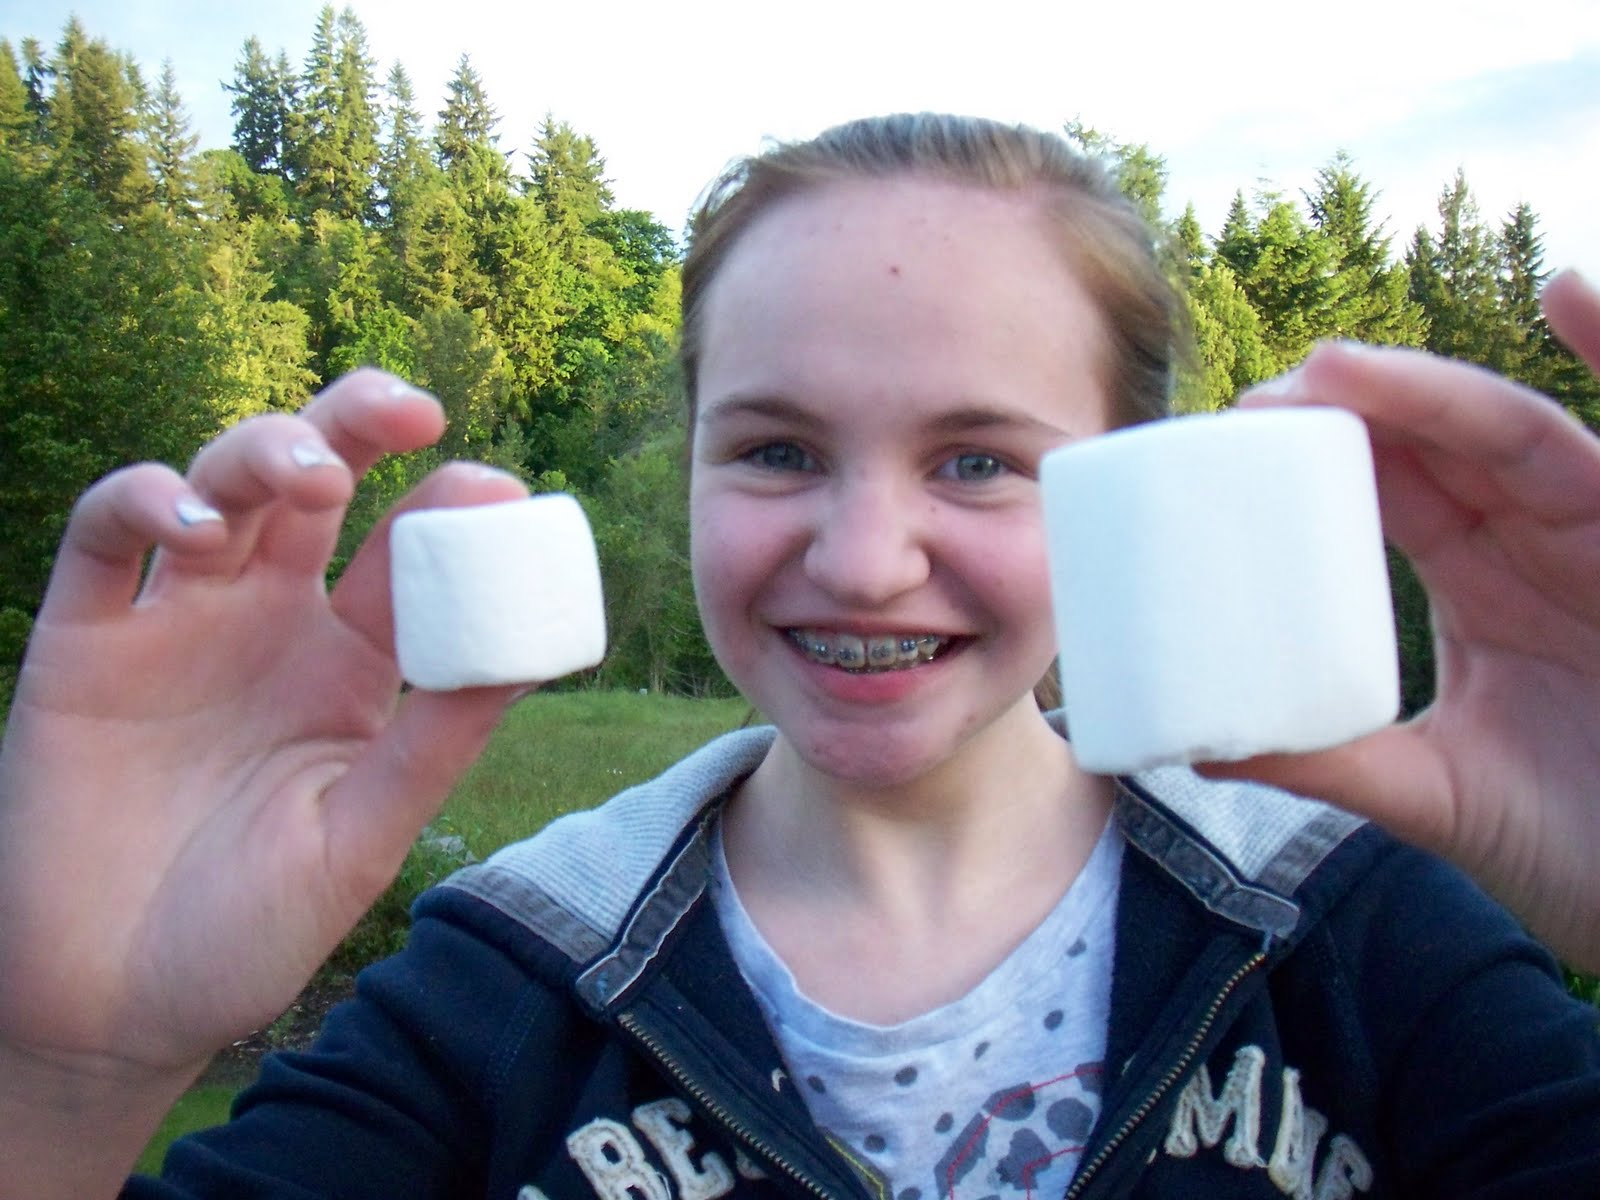 Regular Marshmallow Vs Giant Marshmallow